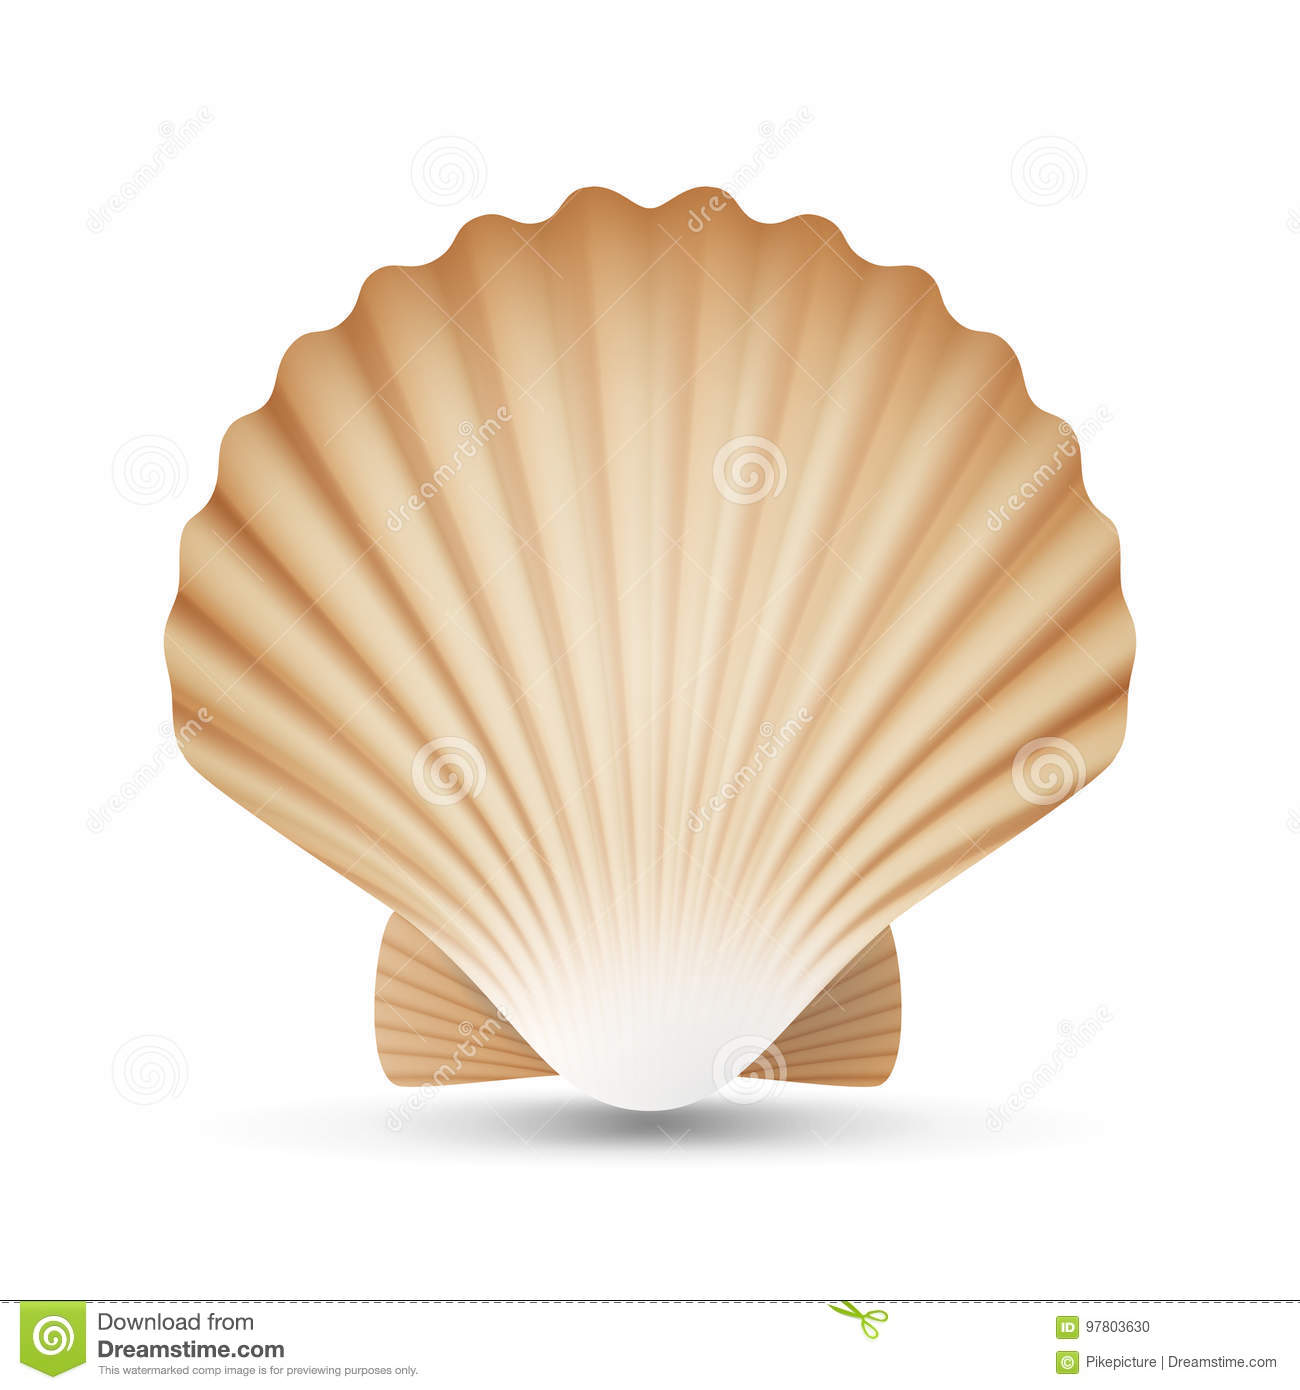 Scallop shell stock illustrations 3345 scallop shell stock scallop shell stock illustrations 3345 scallop shell stock illustrations vectors clipart dreamstime biocorpaavc Image collections